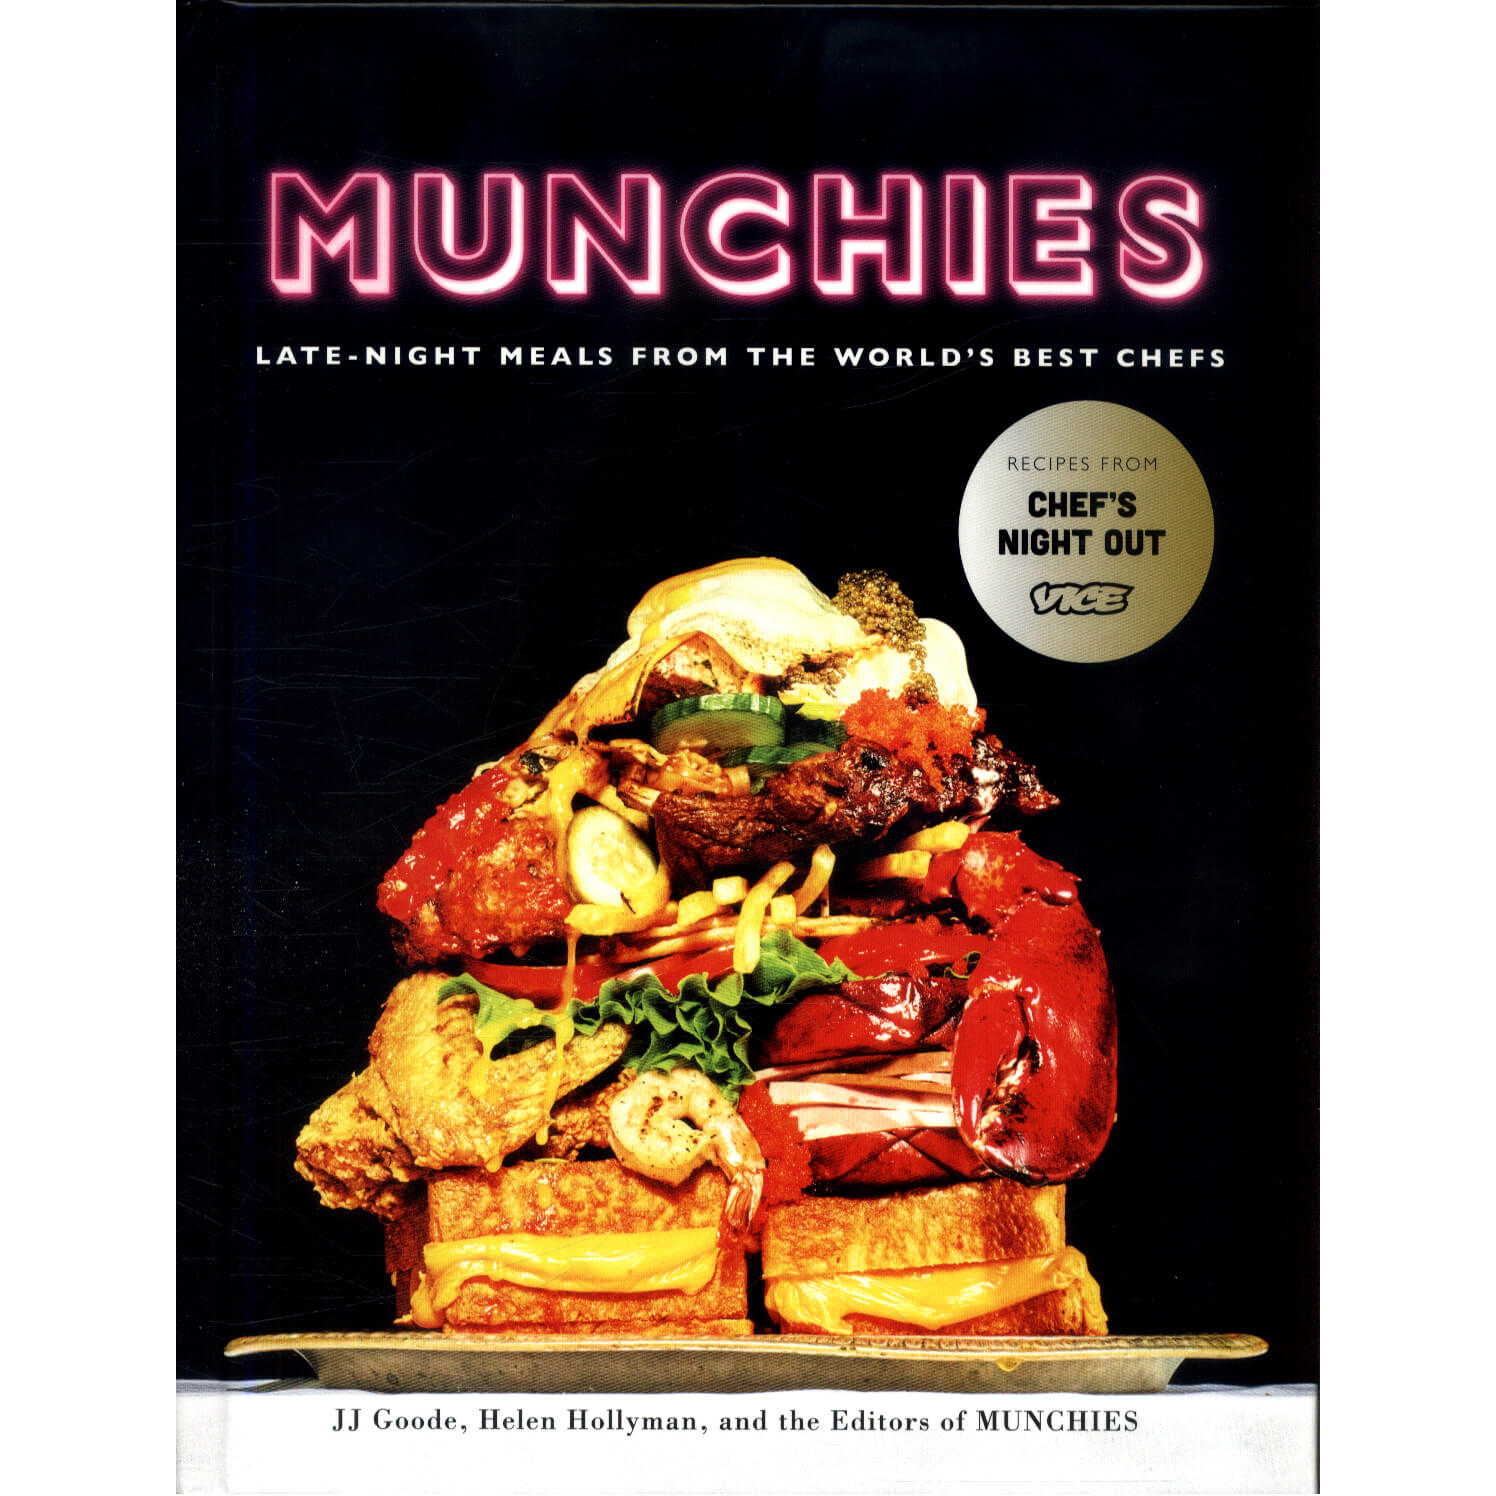 Munchies: Late-Night Meals from the World